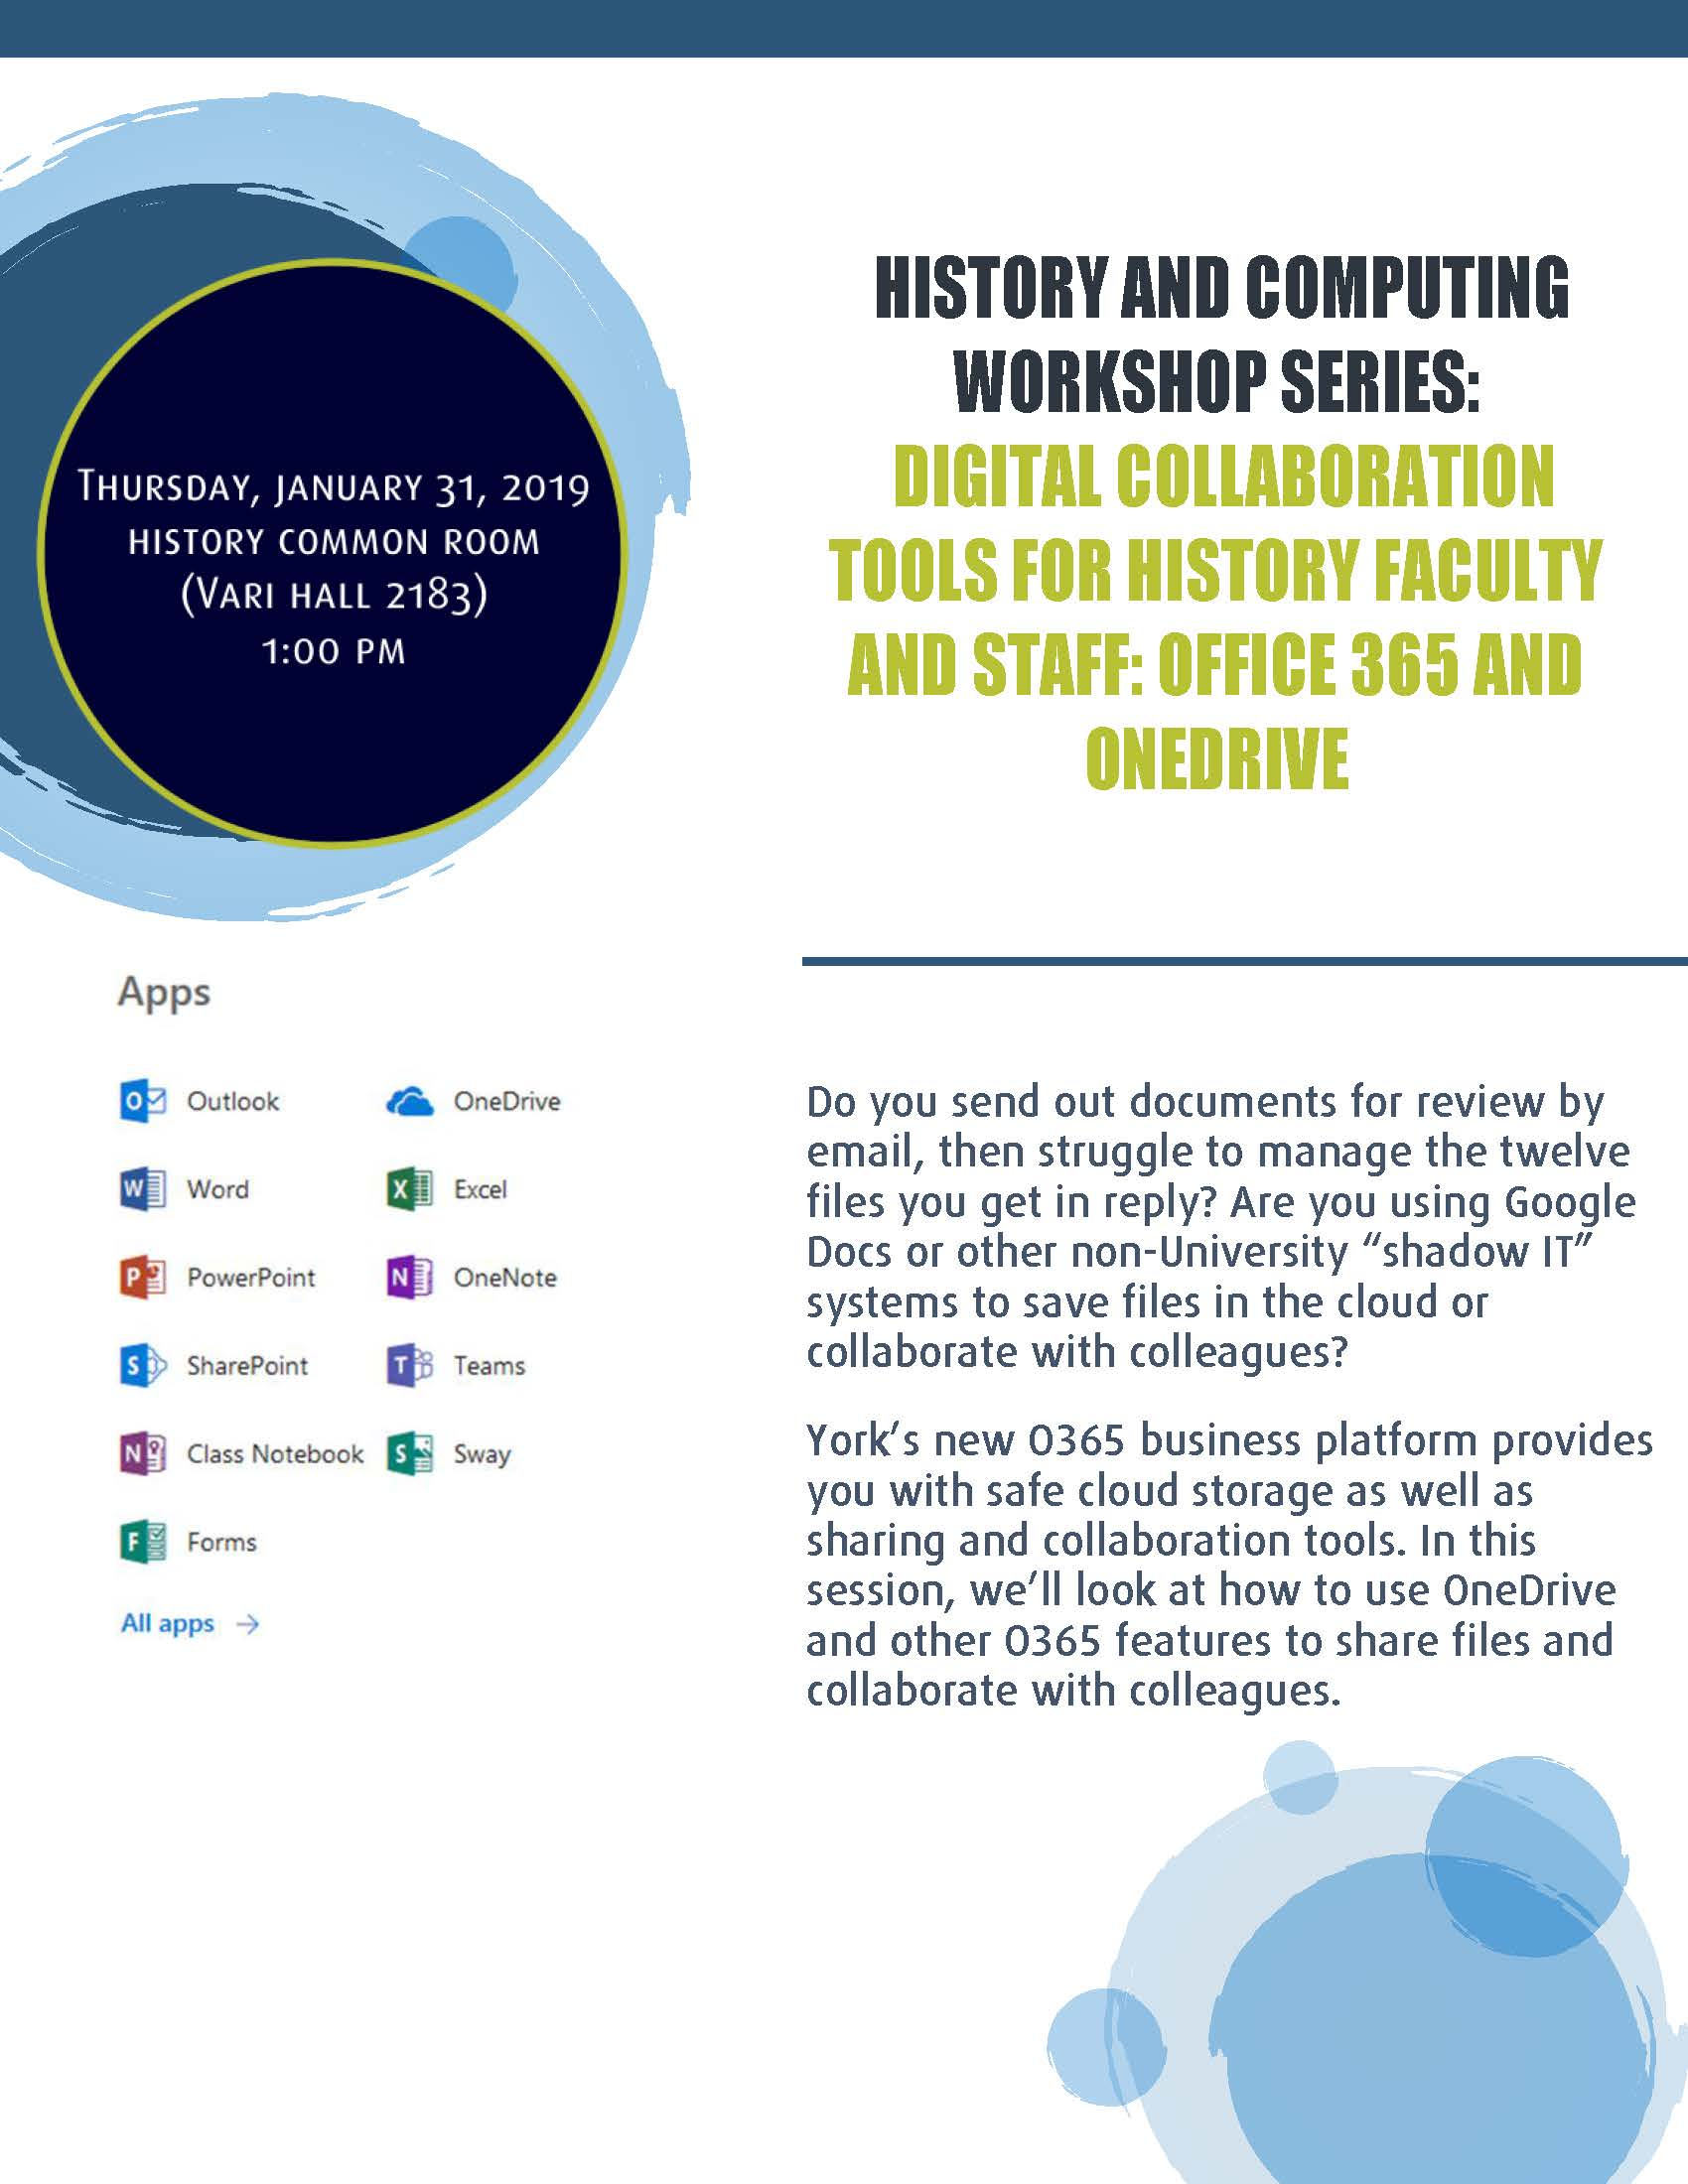 History and Computing Workshop Series: Digital Collaborative Tools for History Faculty and Staff - Office 365 and OneDrive